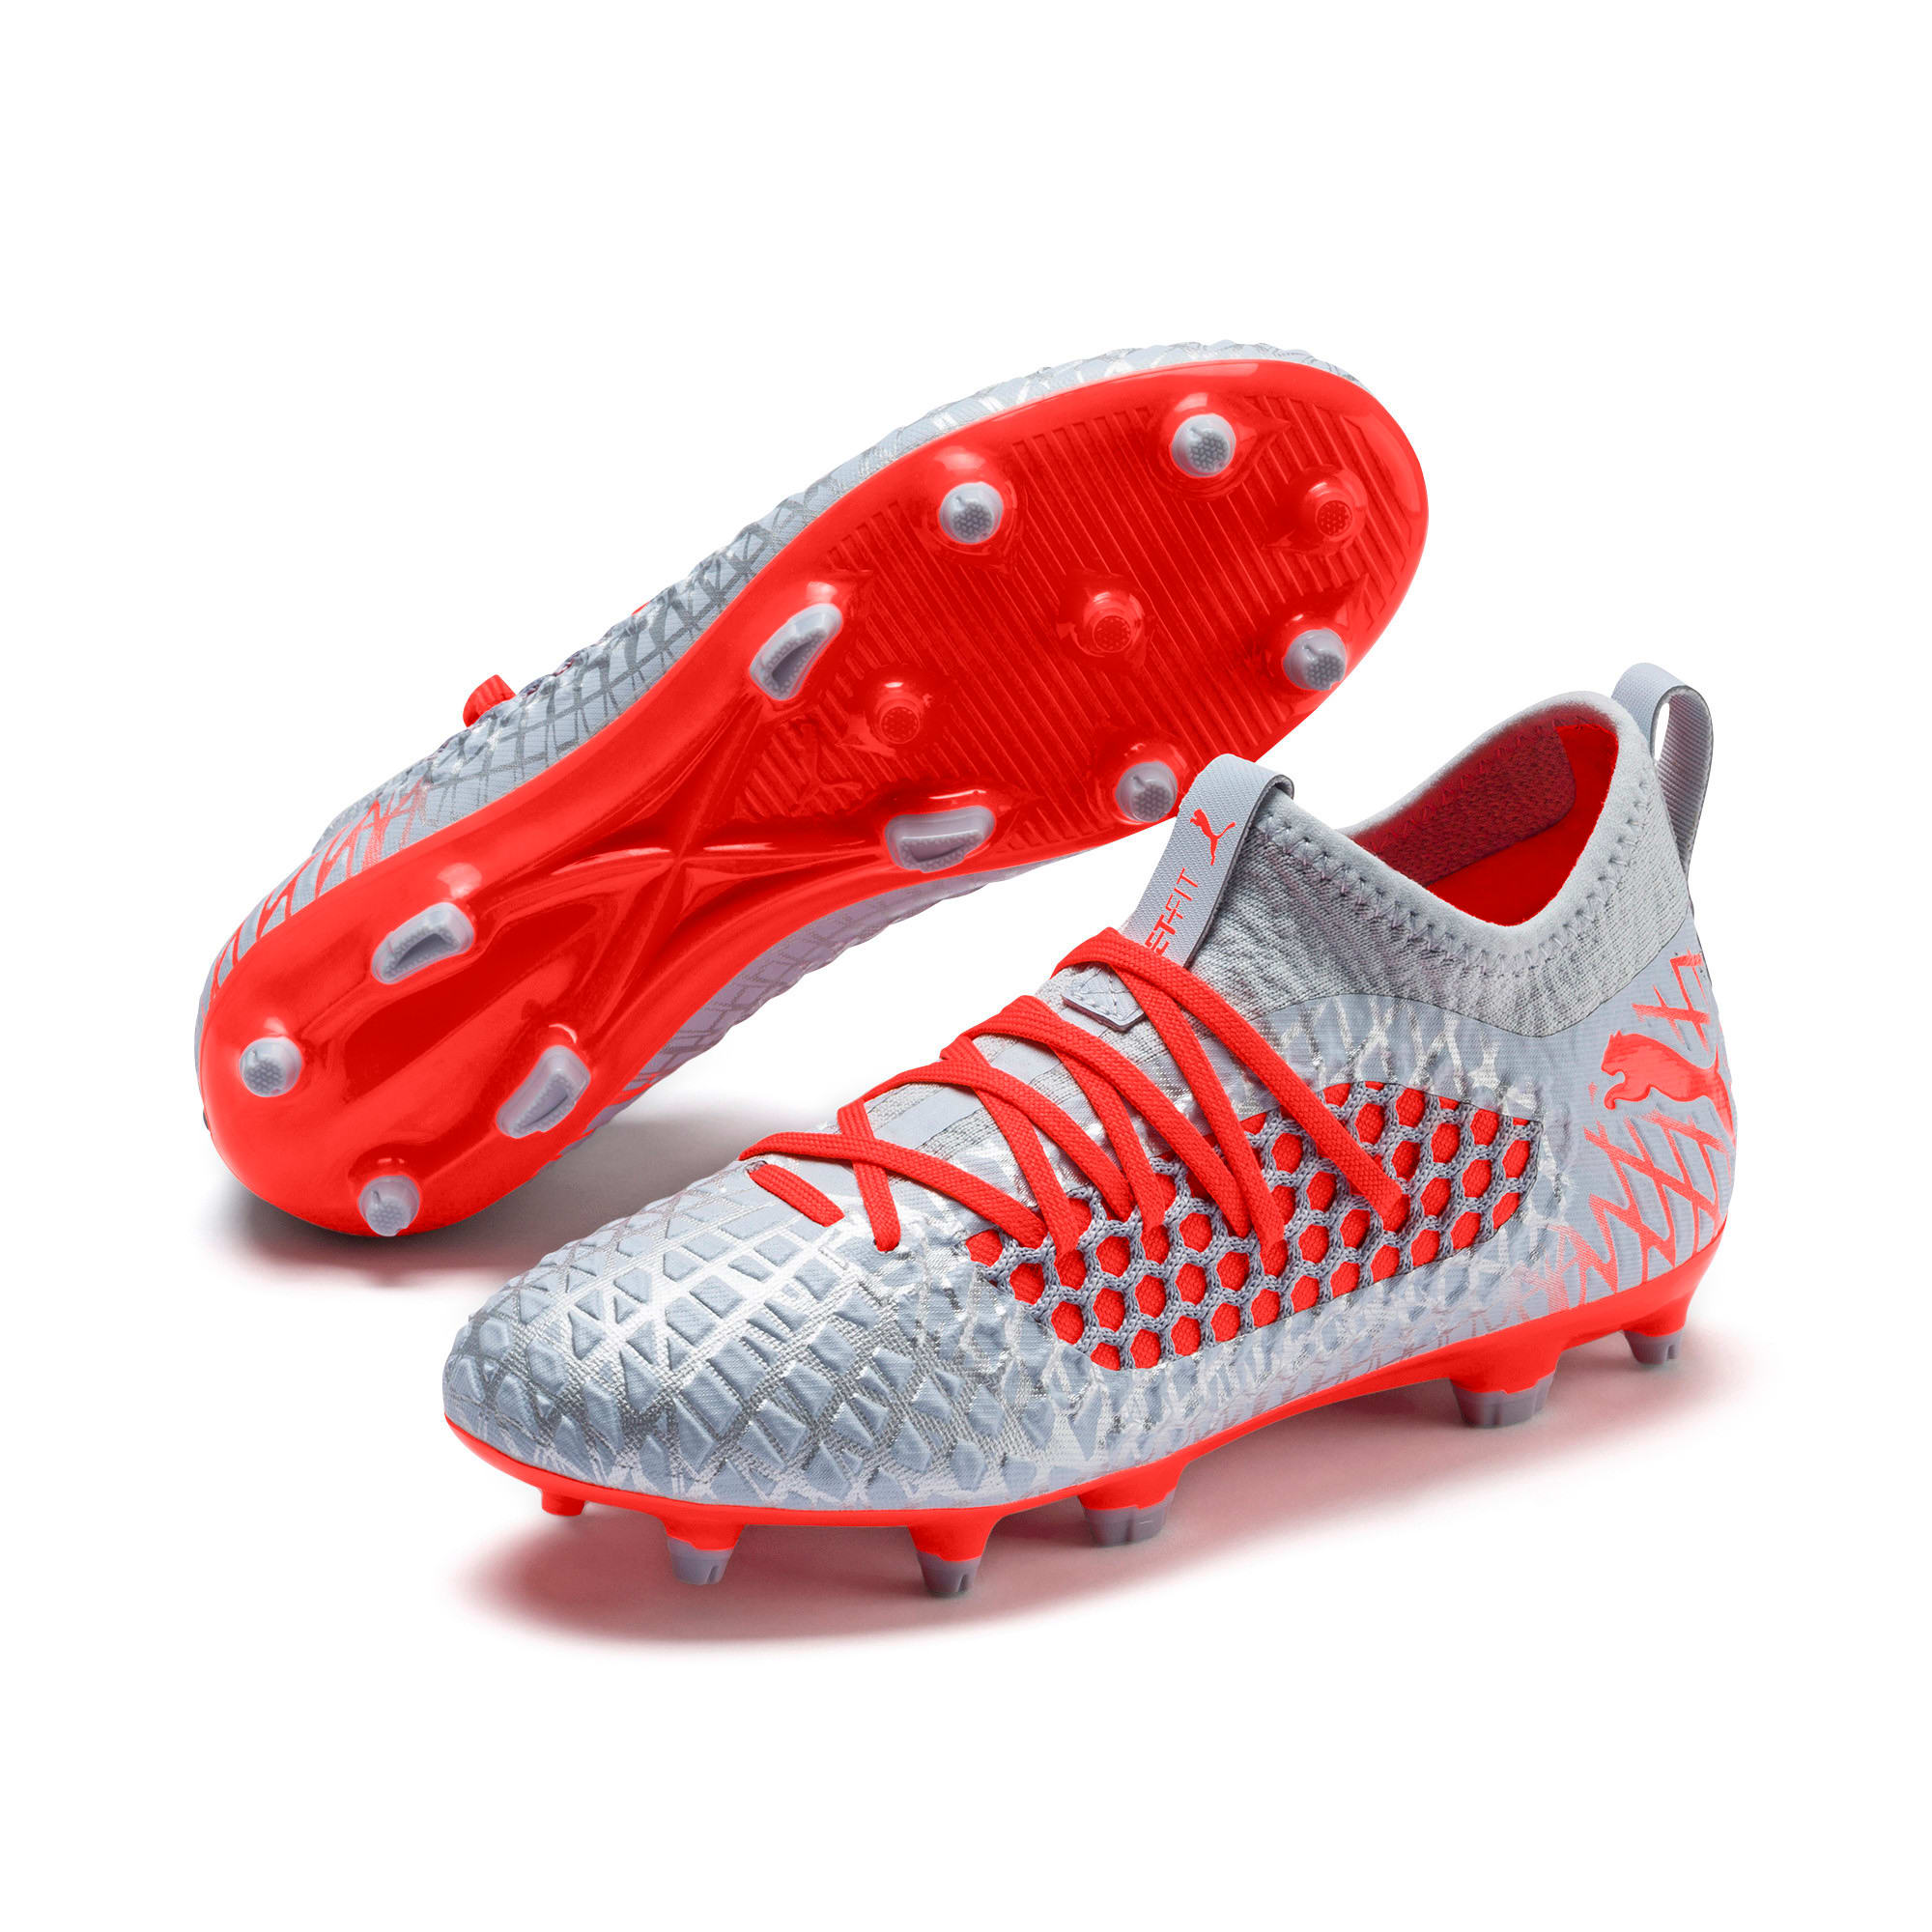 Thumbnail 2 of FUTURE 4.3 NETFIT Youth FG/AG Football Boots, Glacial Blue-Nrgy Red, medium